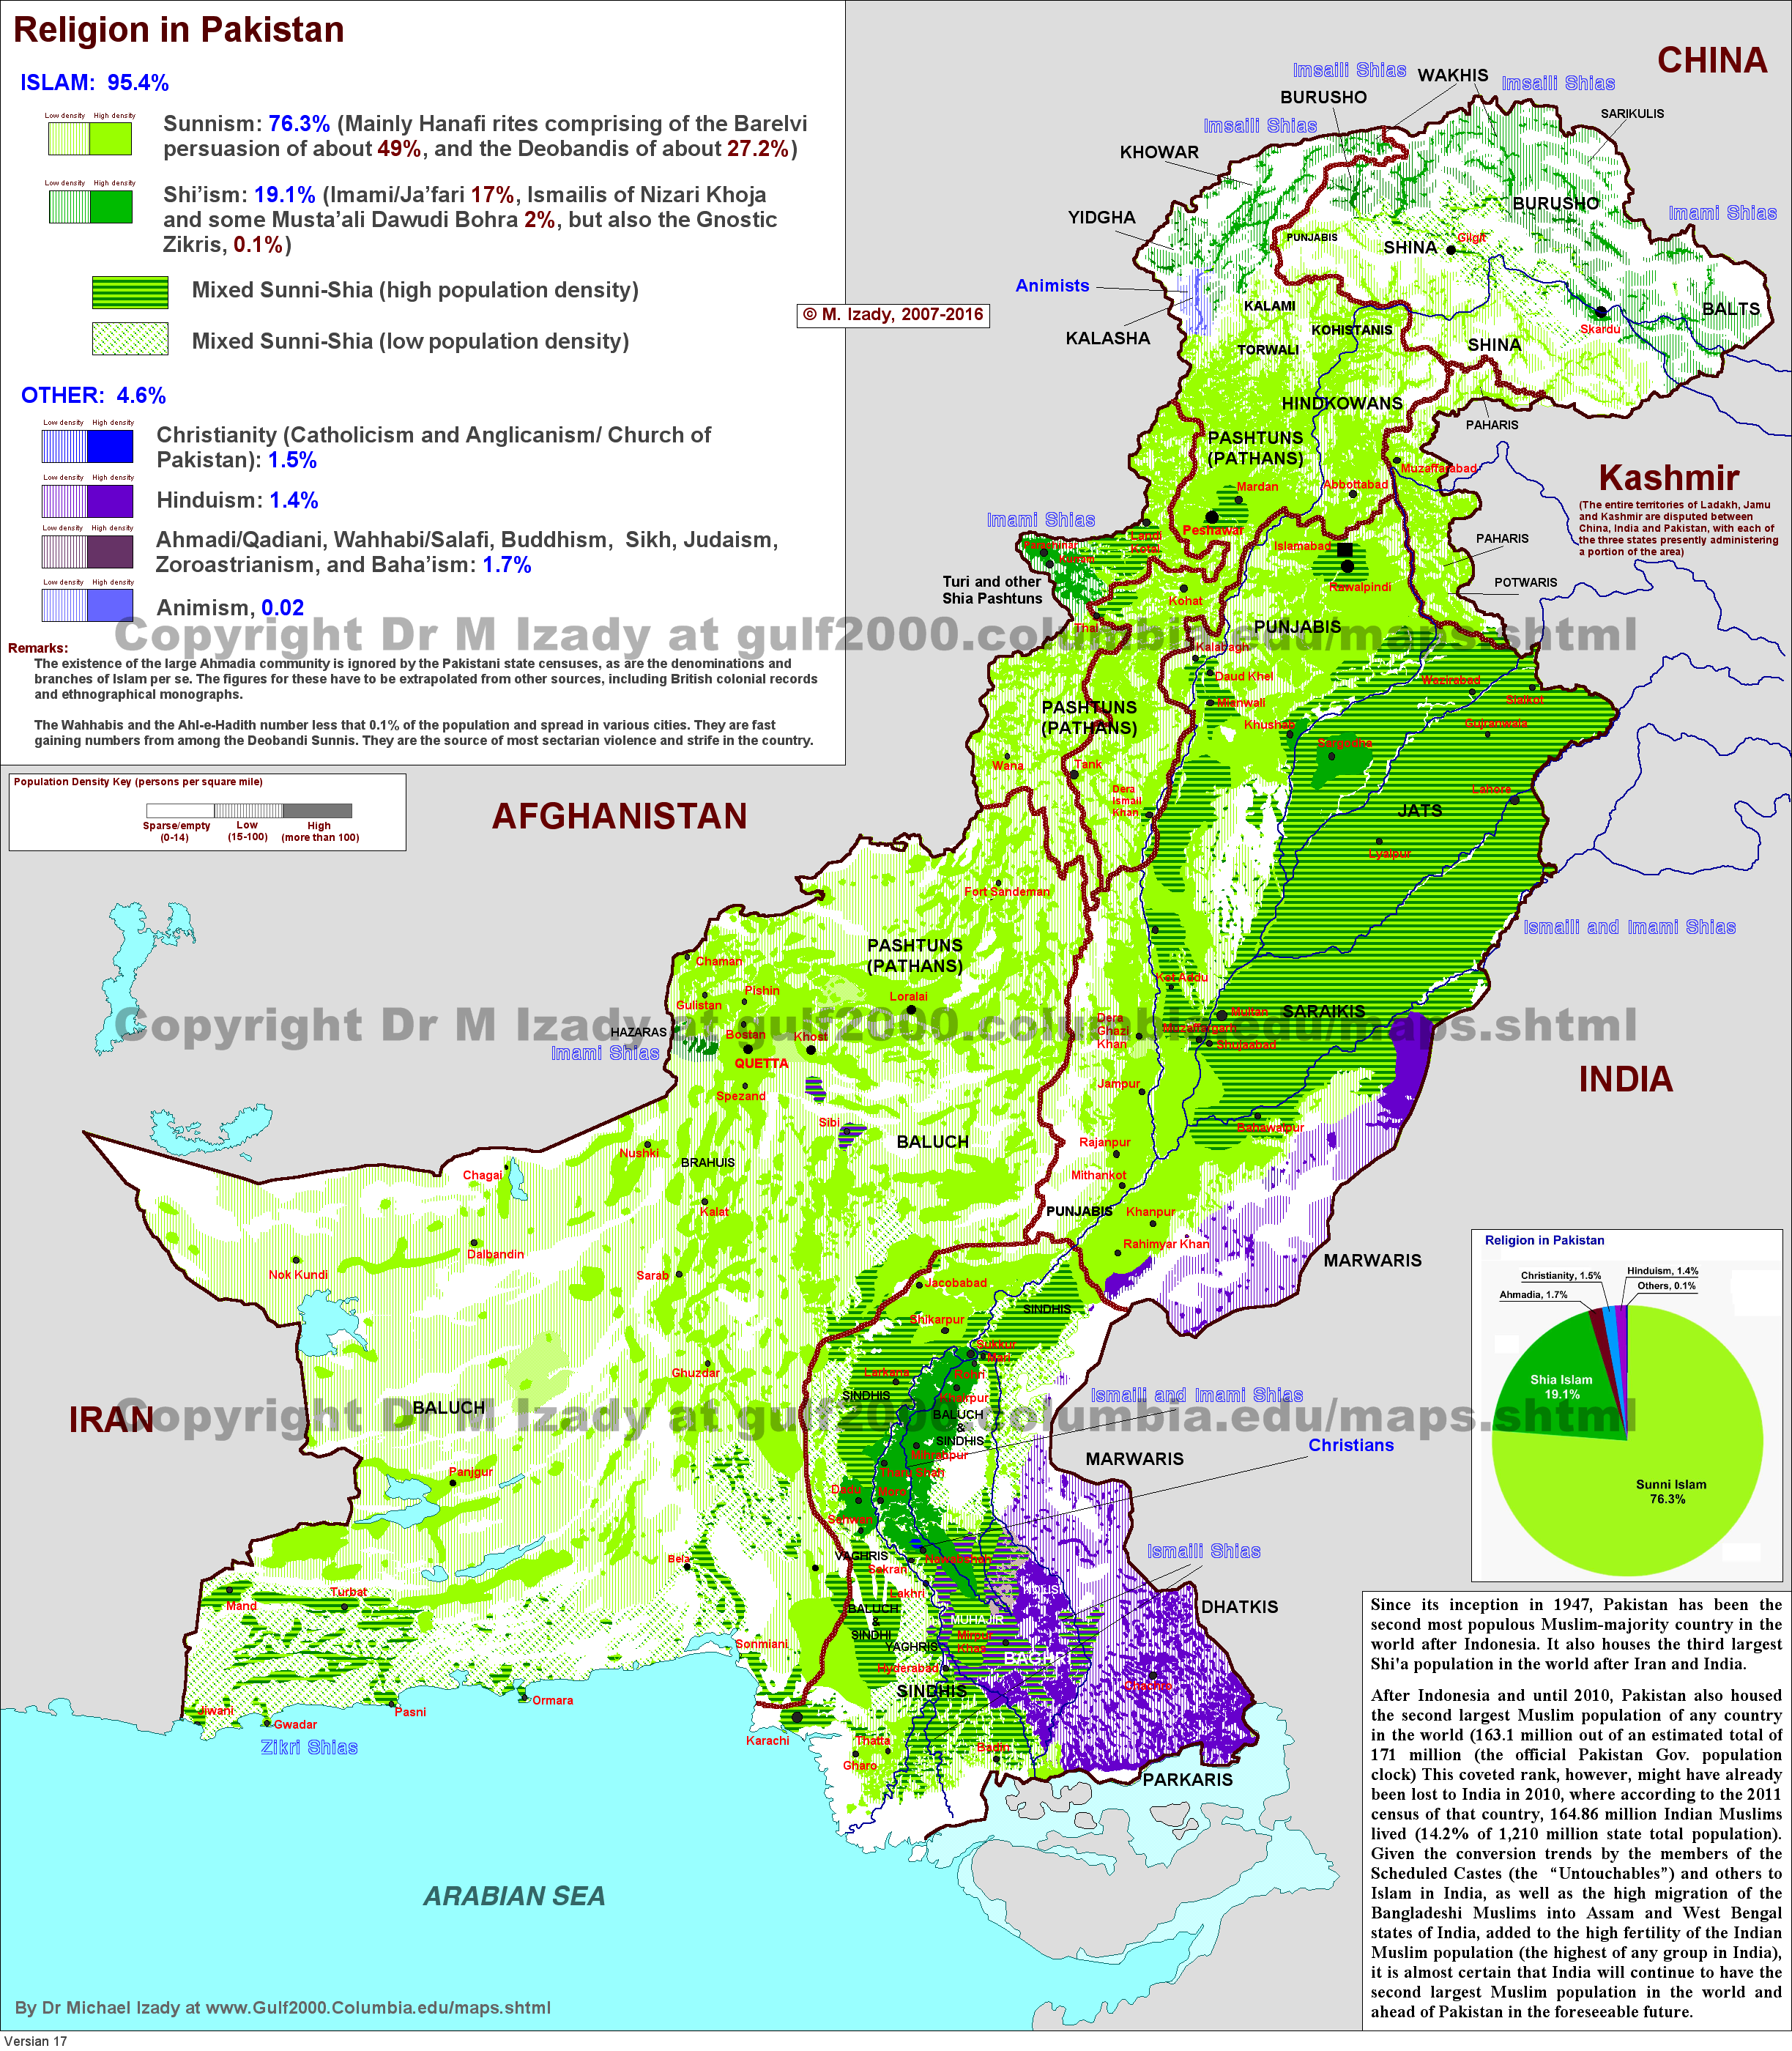 How Did Partition Change The Religious Map In Punjab South Asia - World map showing religion